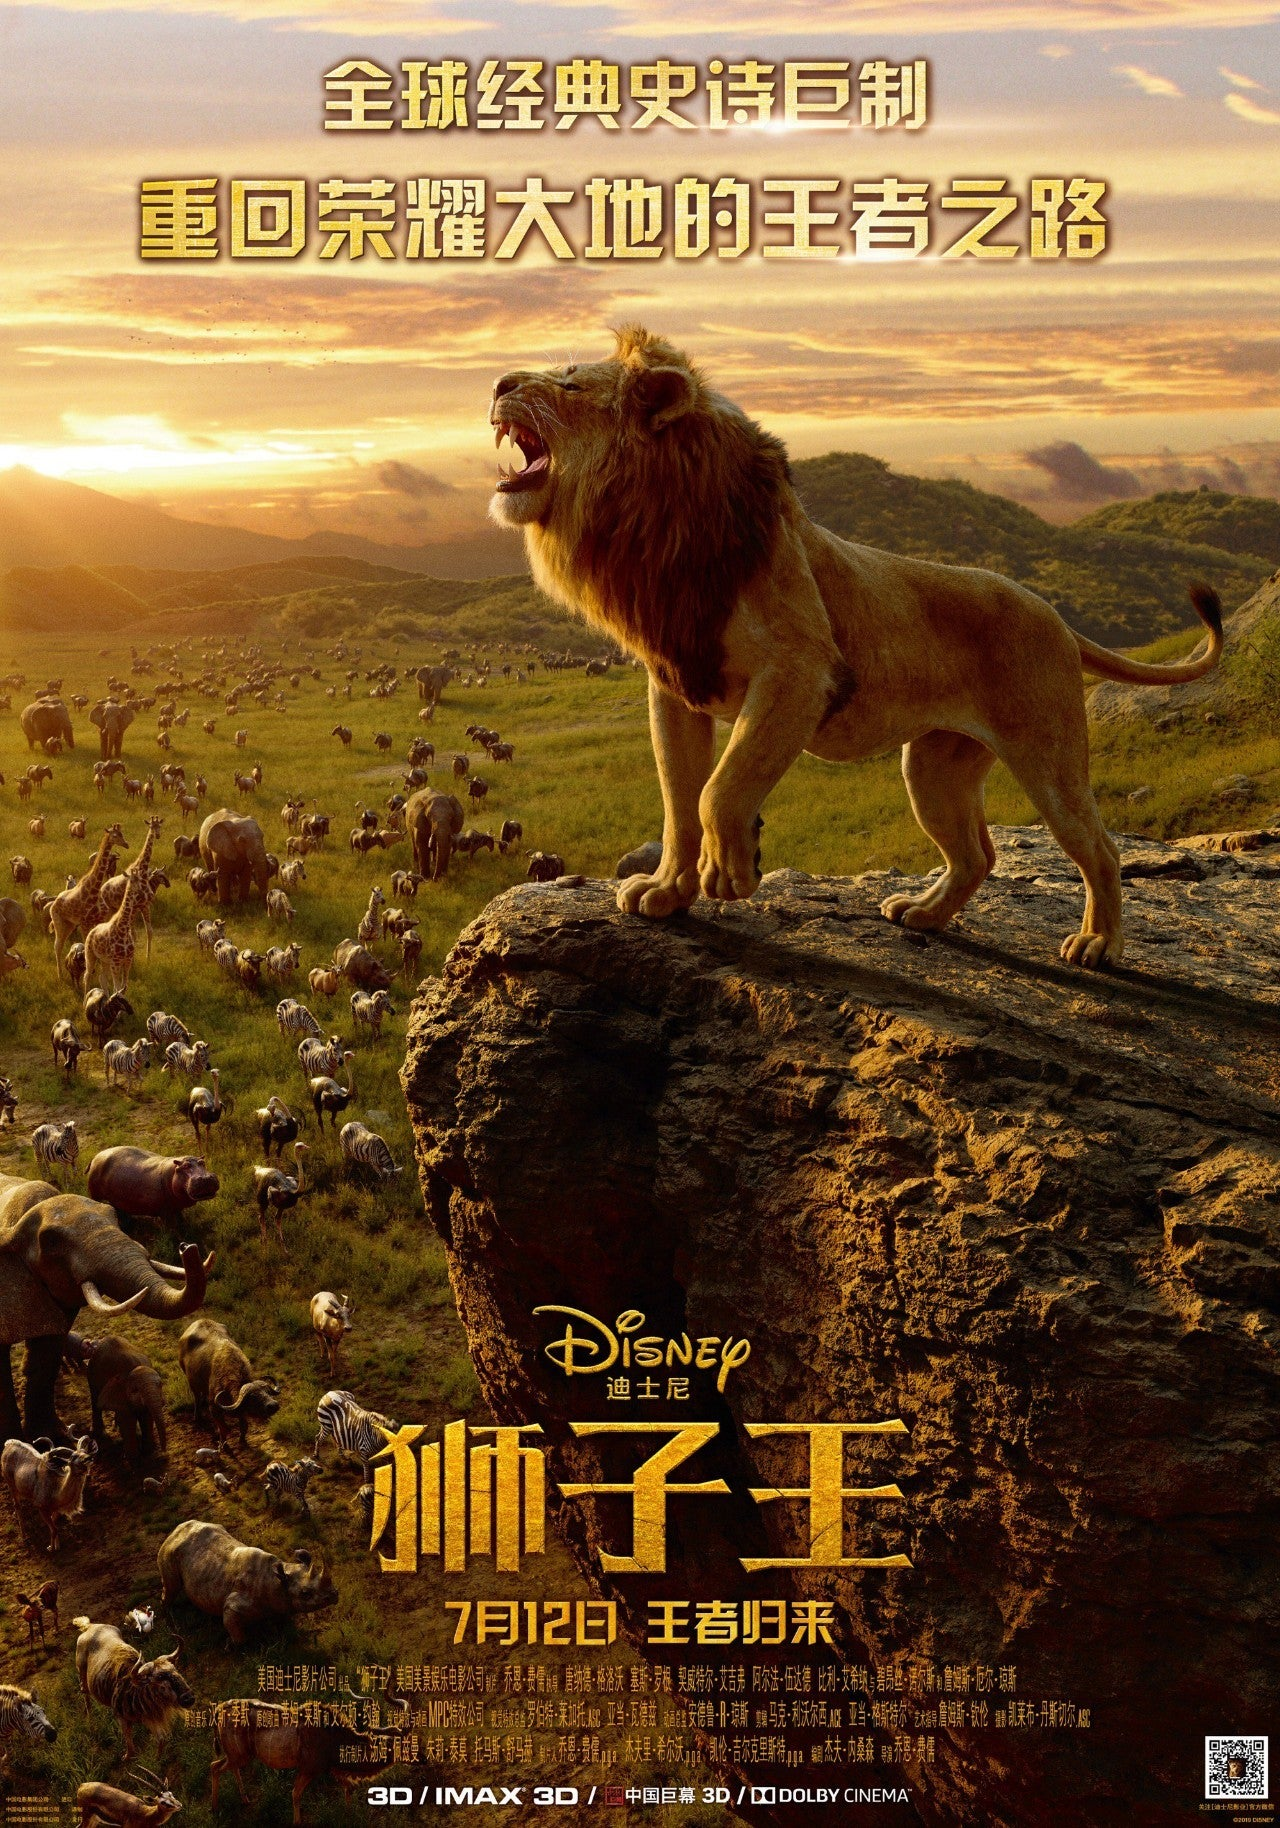 Lion King movie poster in Chinese.